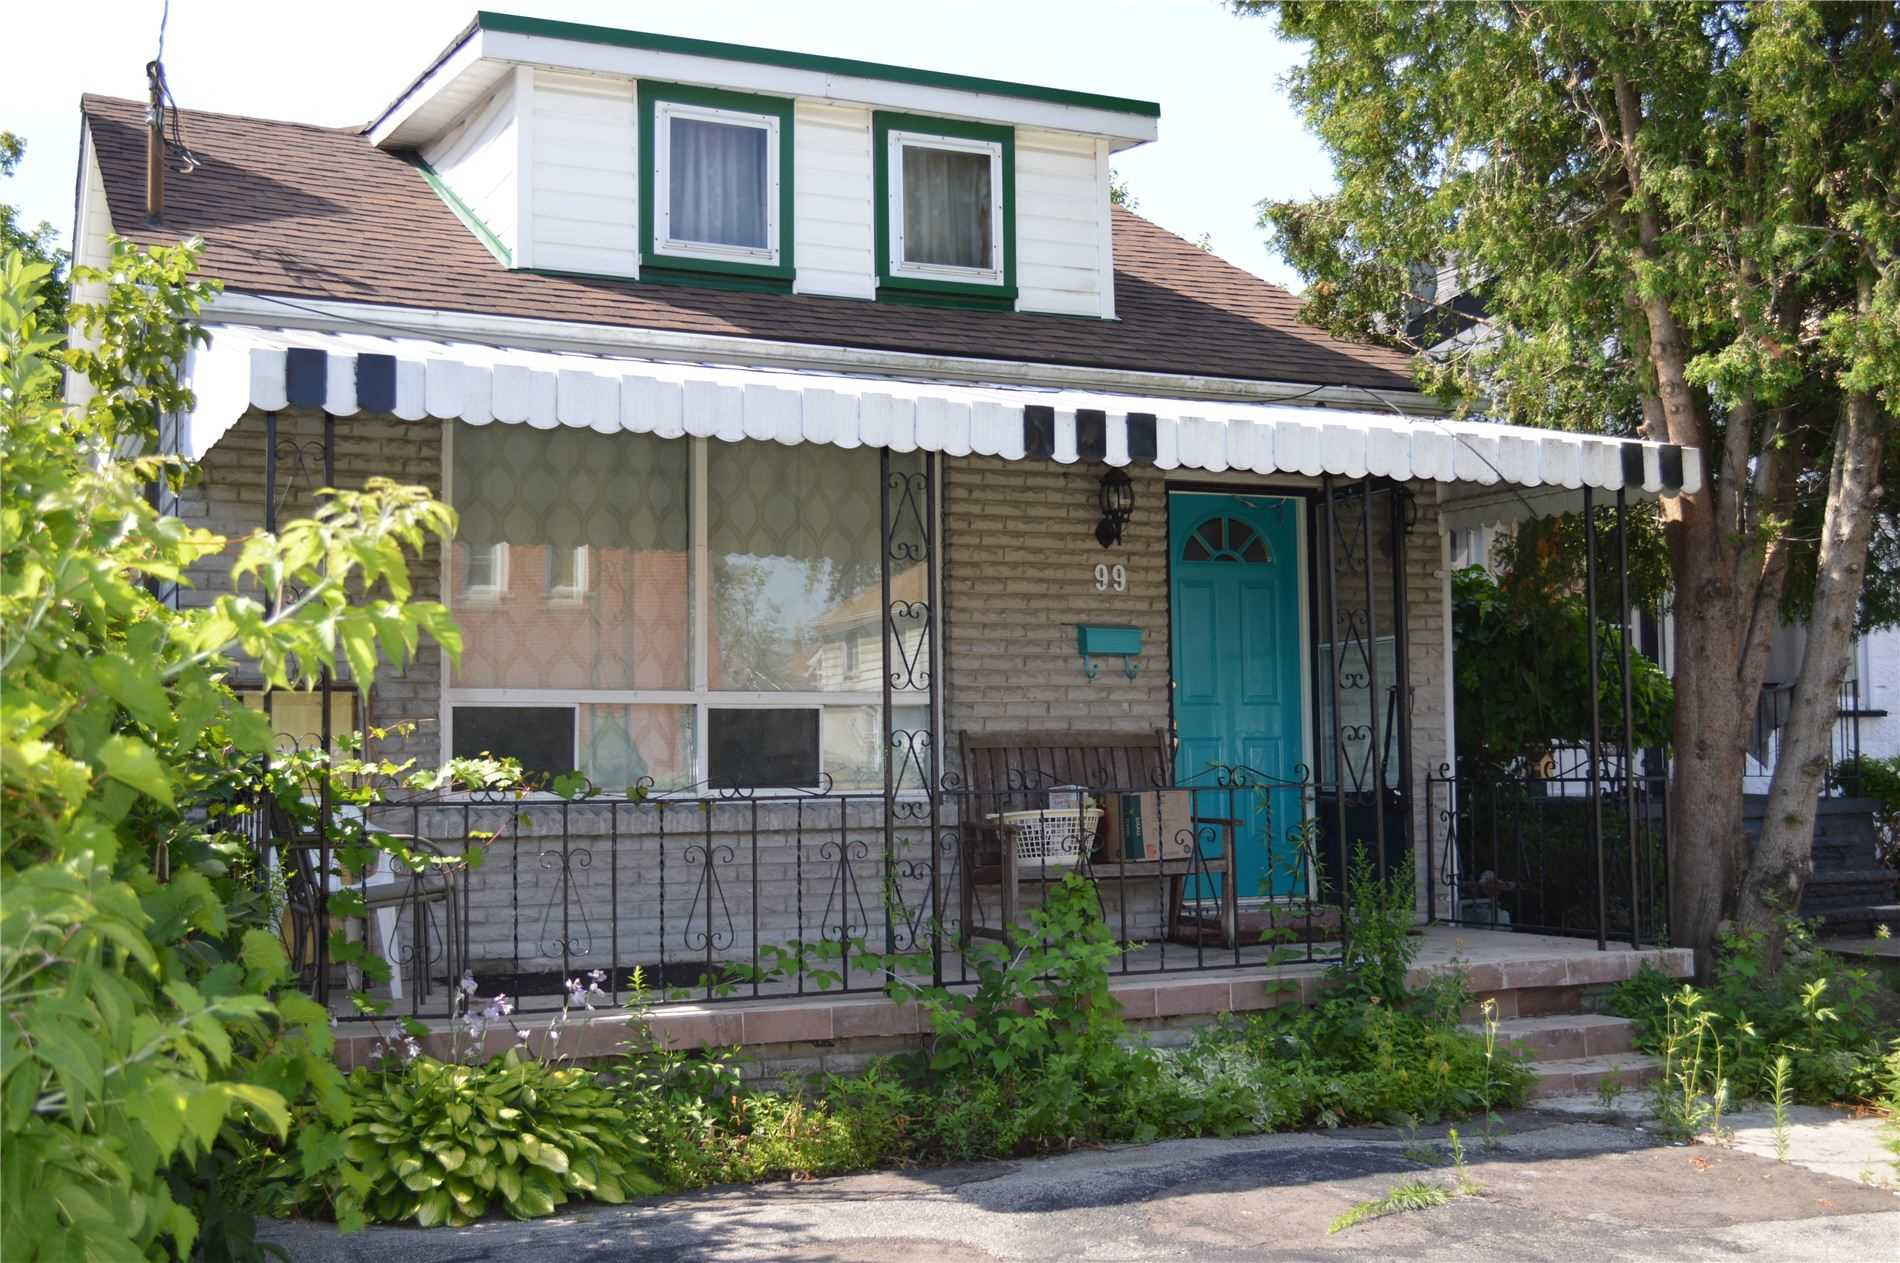 99 Highview Ave, Toronto, Ontario M1N2H6, 3 Bedrooms Bedrooms, 5 Rooms Rooms,2 BathroomsBathrooms,Detached,For Sale,Highview,E4849631